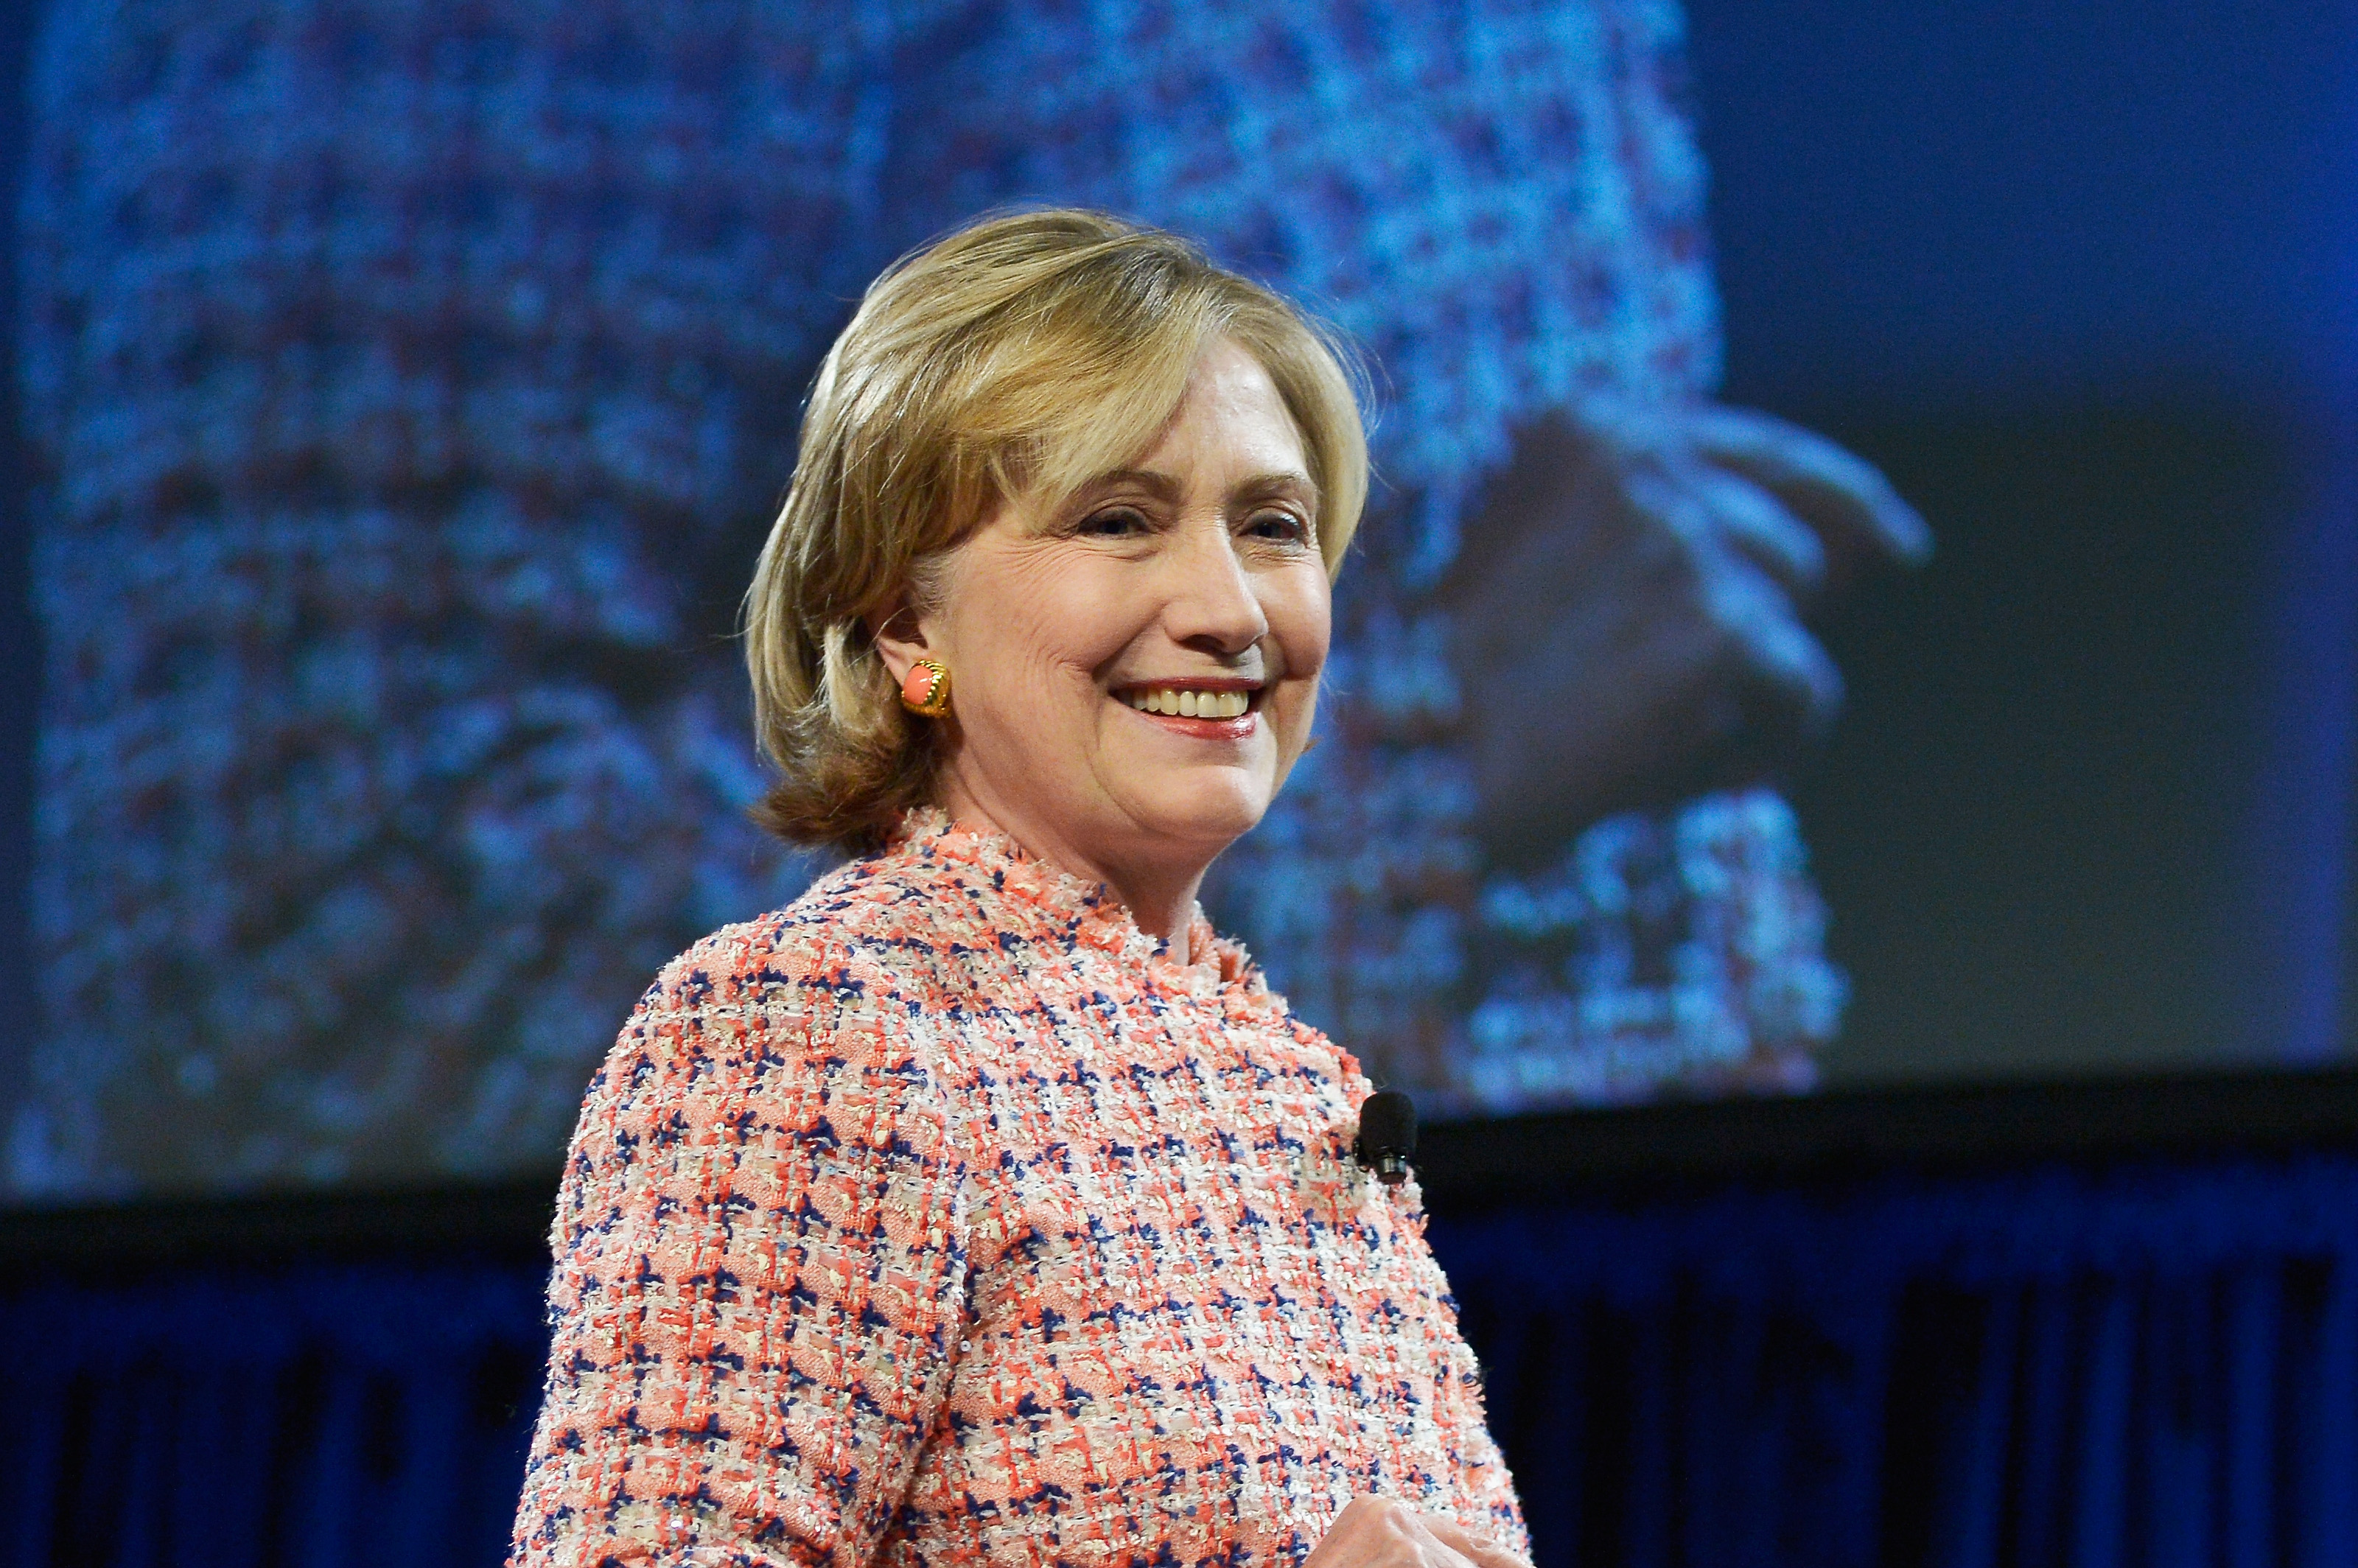 Hillary Clinton delivers the Keynote Address at the 35th Annual Simmons Leadership Conference